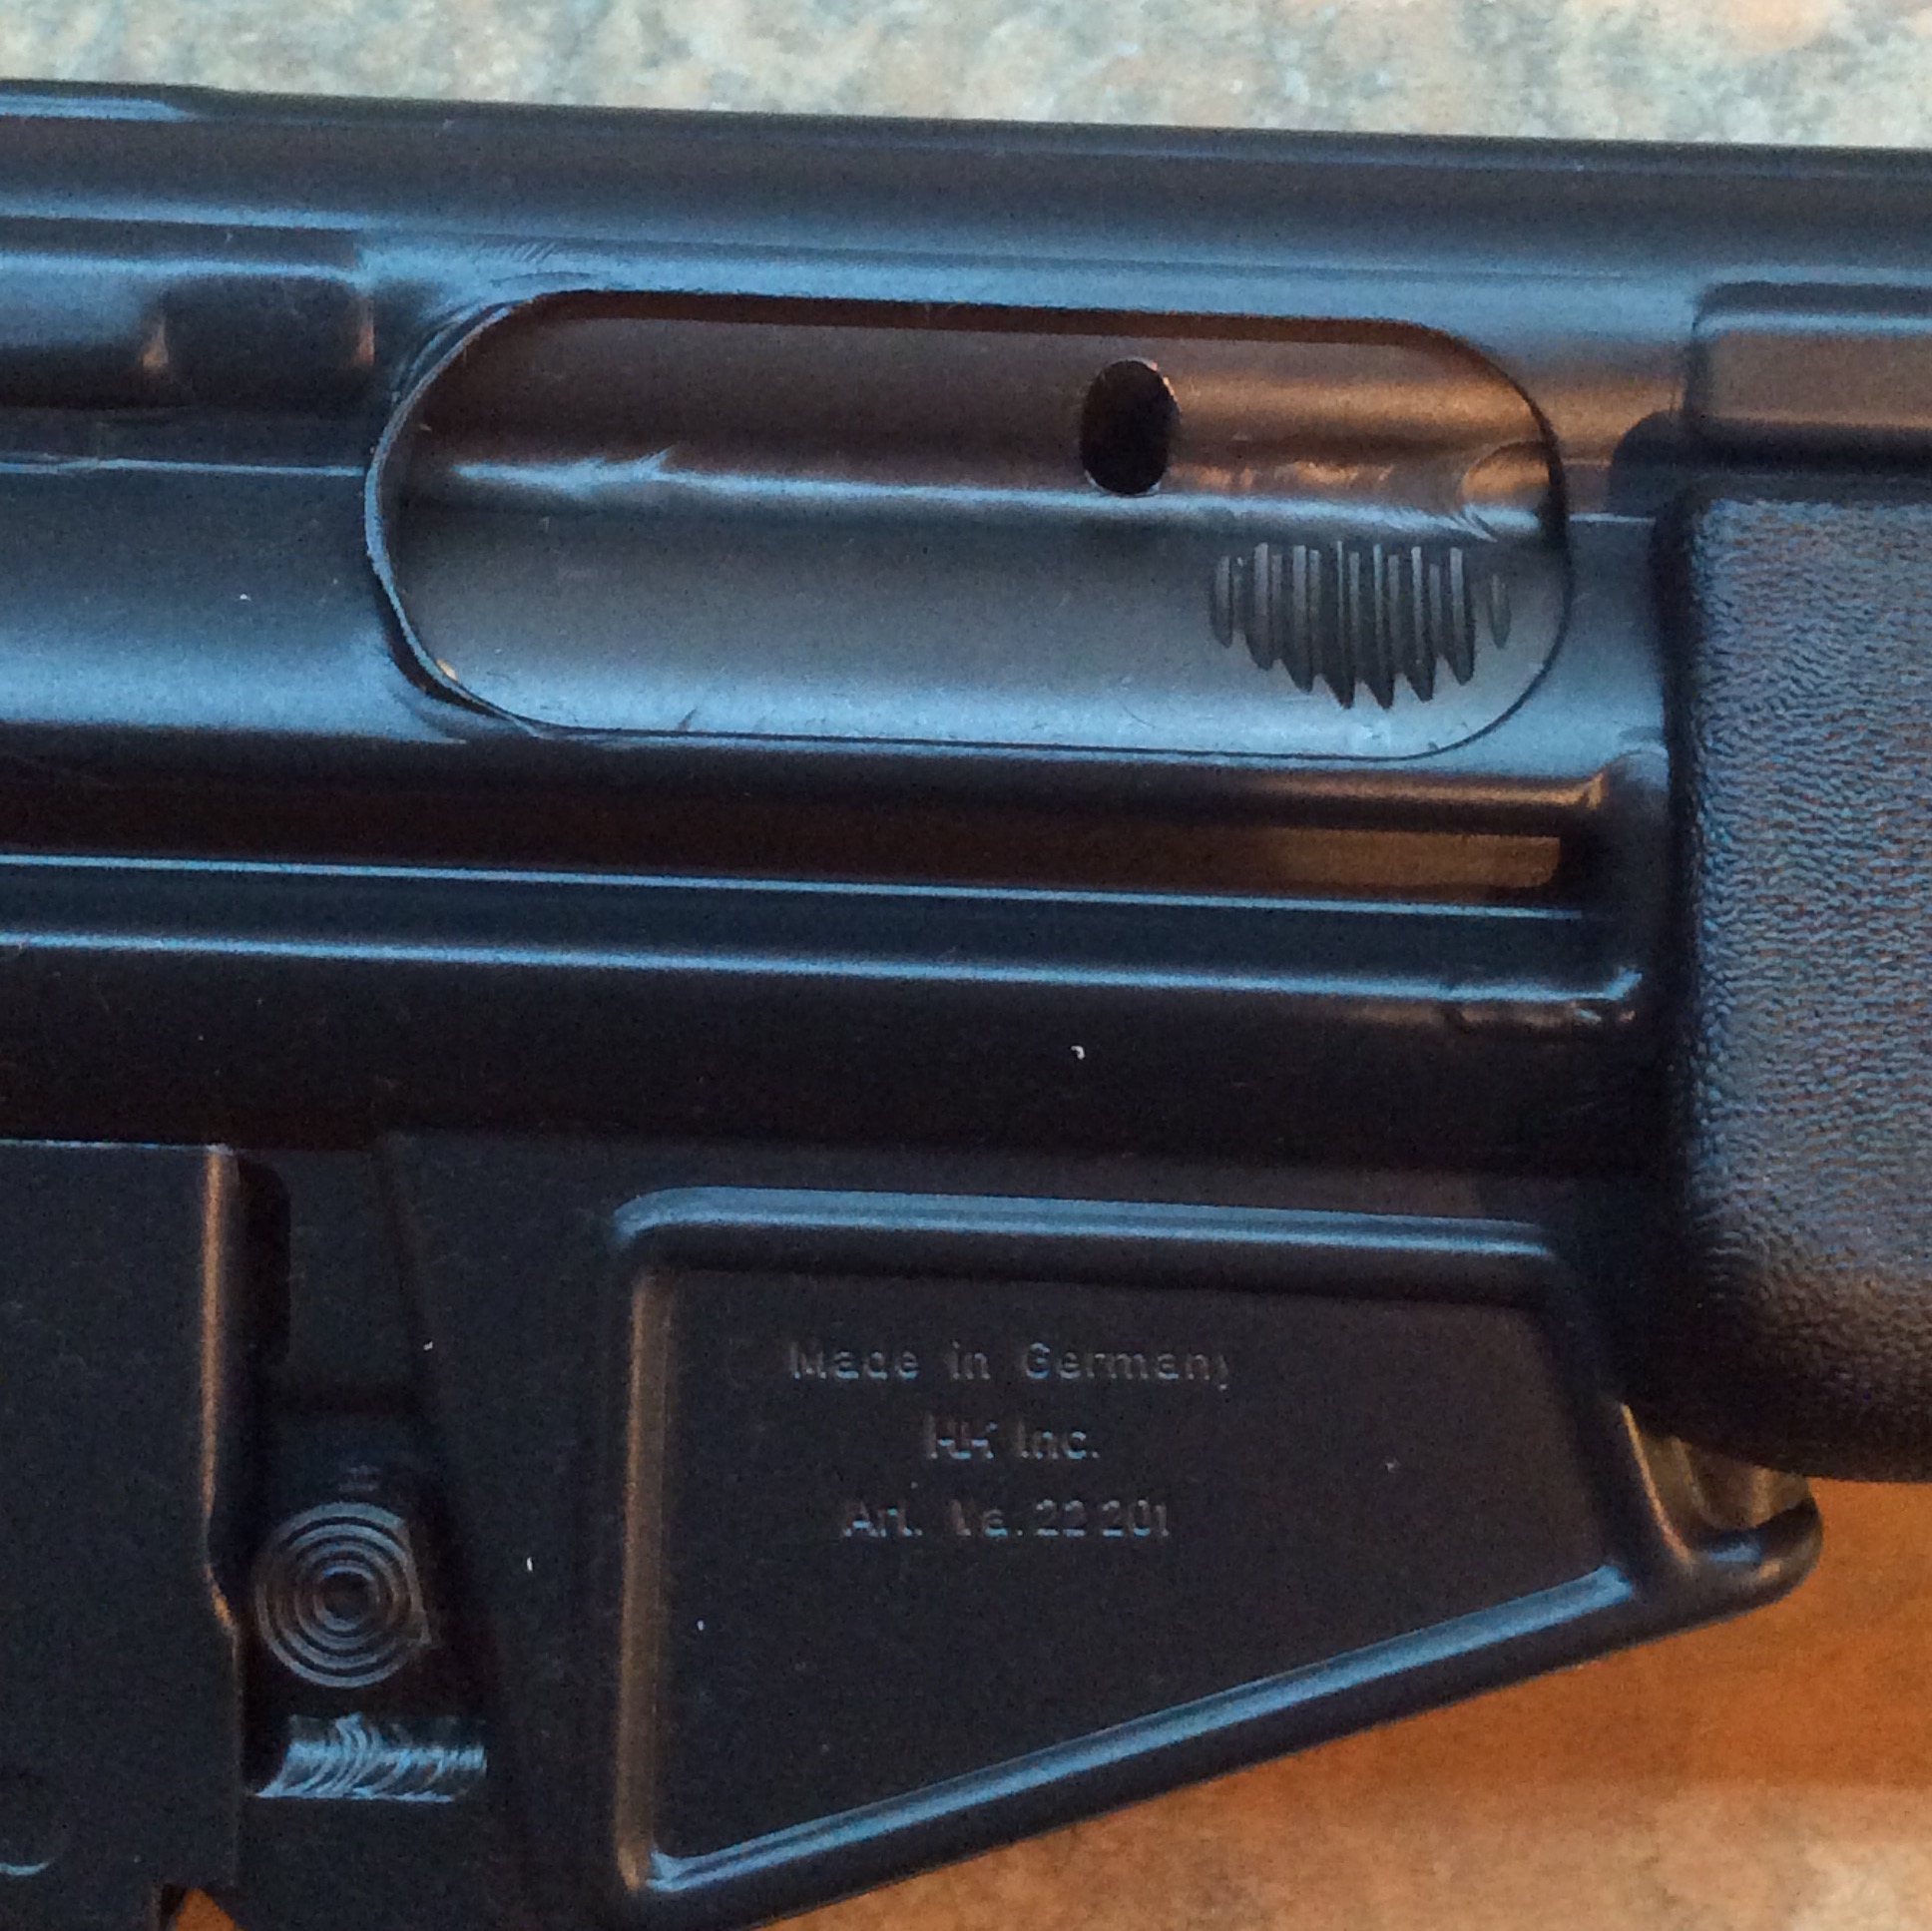 collapsible stock sl8: